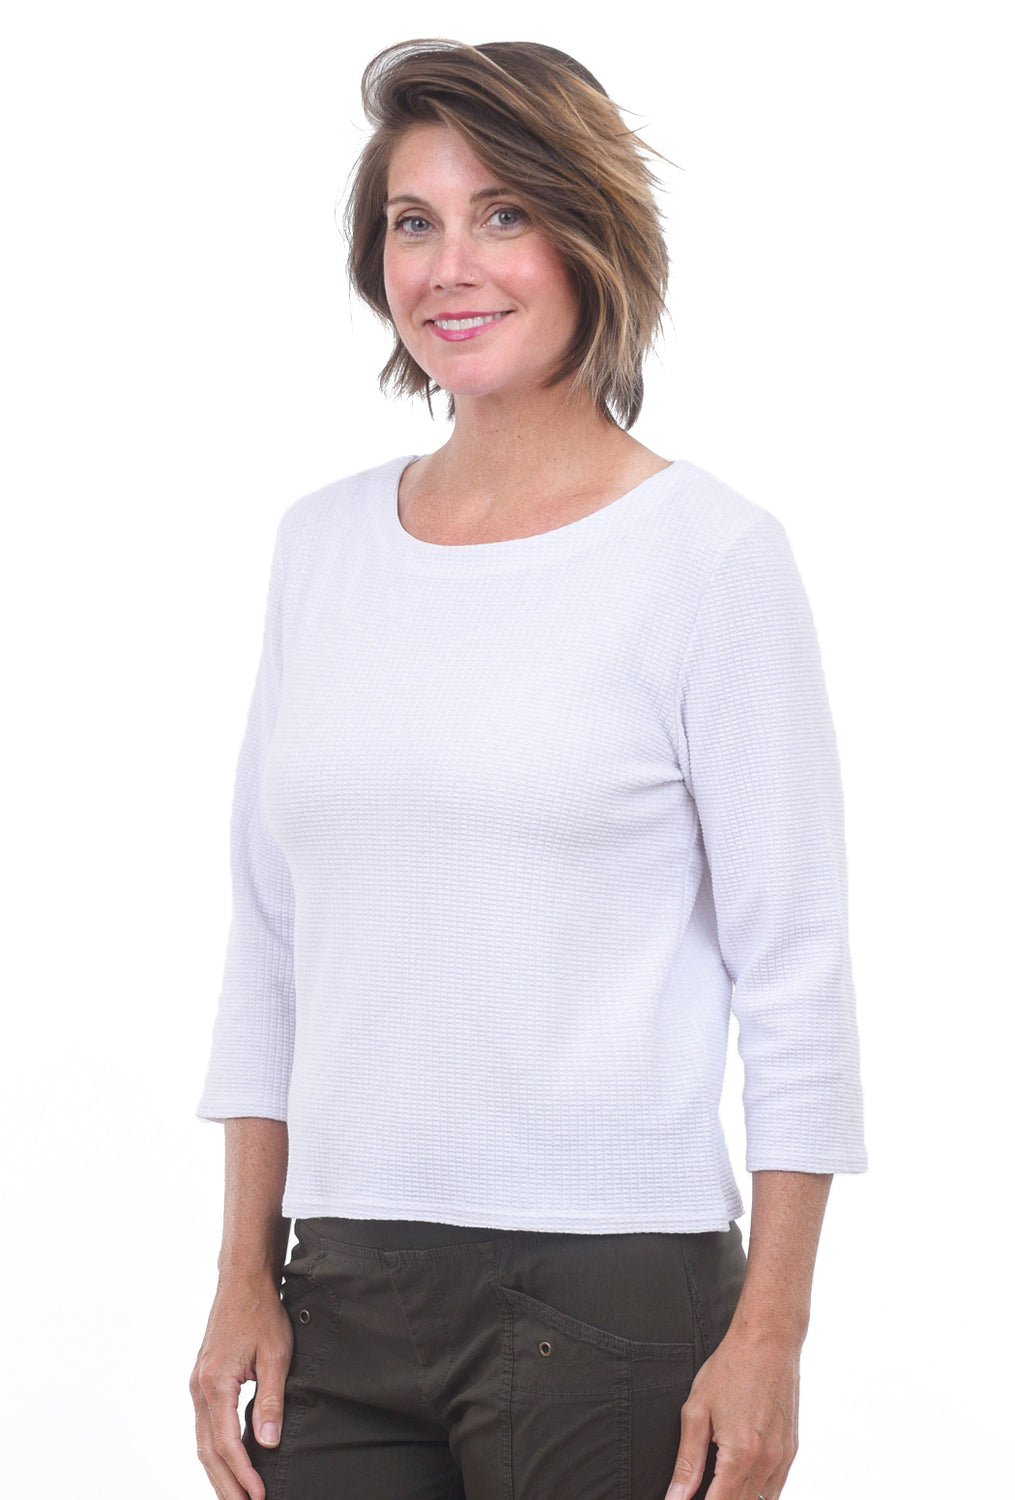 Lilla P Thermal Boatneck Top, White